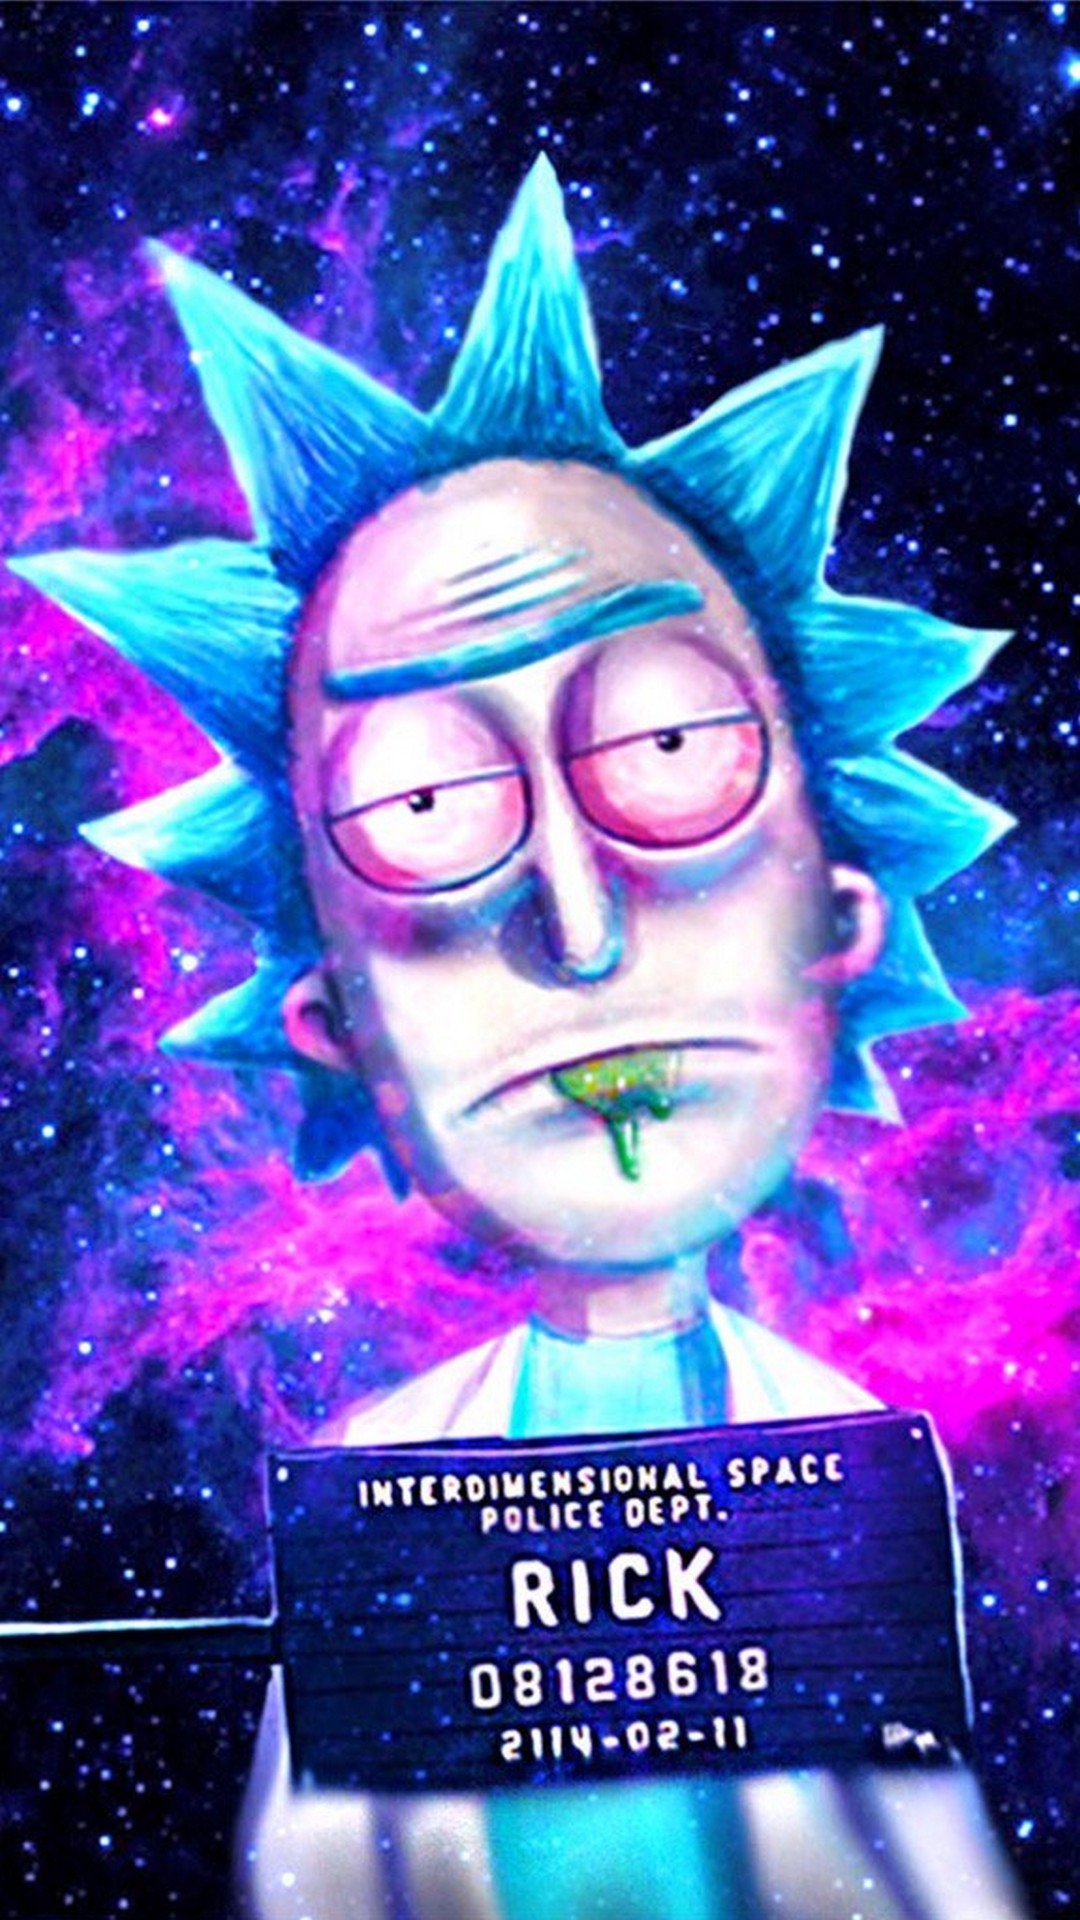 Title : hd rick and morty cartoon network iphone wallpaper – best iphone. Dimension : 1080 x 1920. File Type : JPG/JPEG